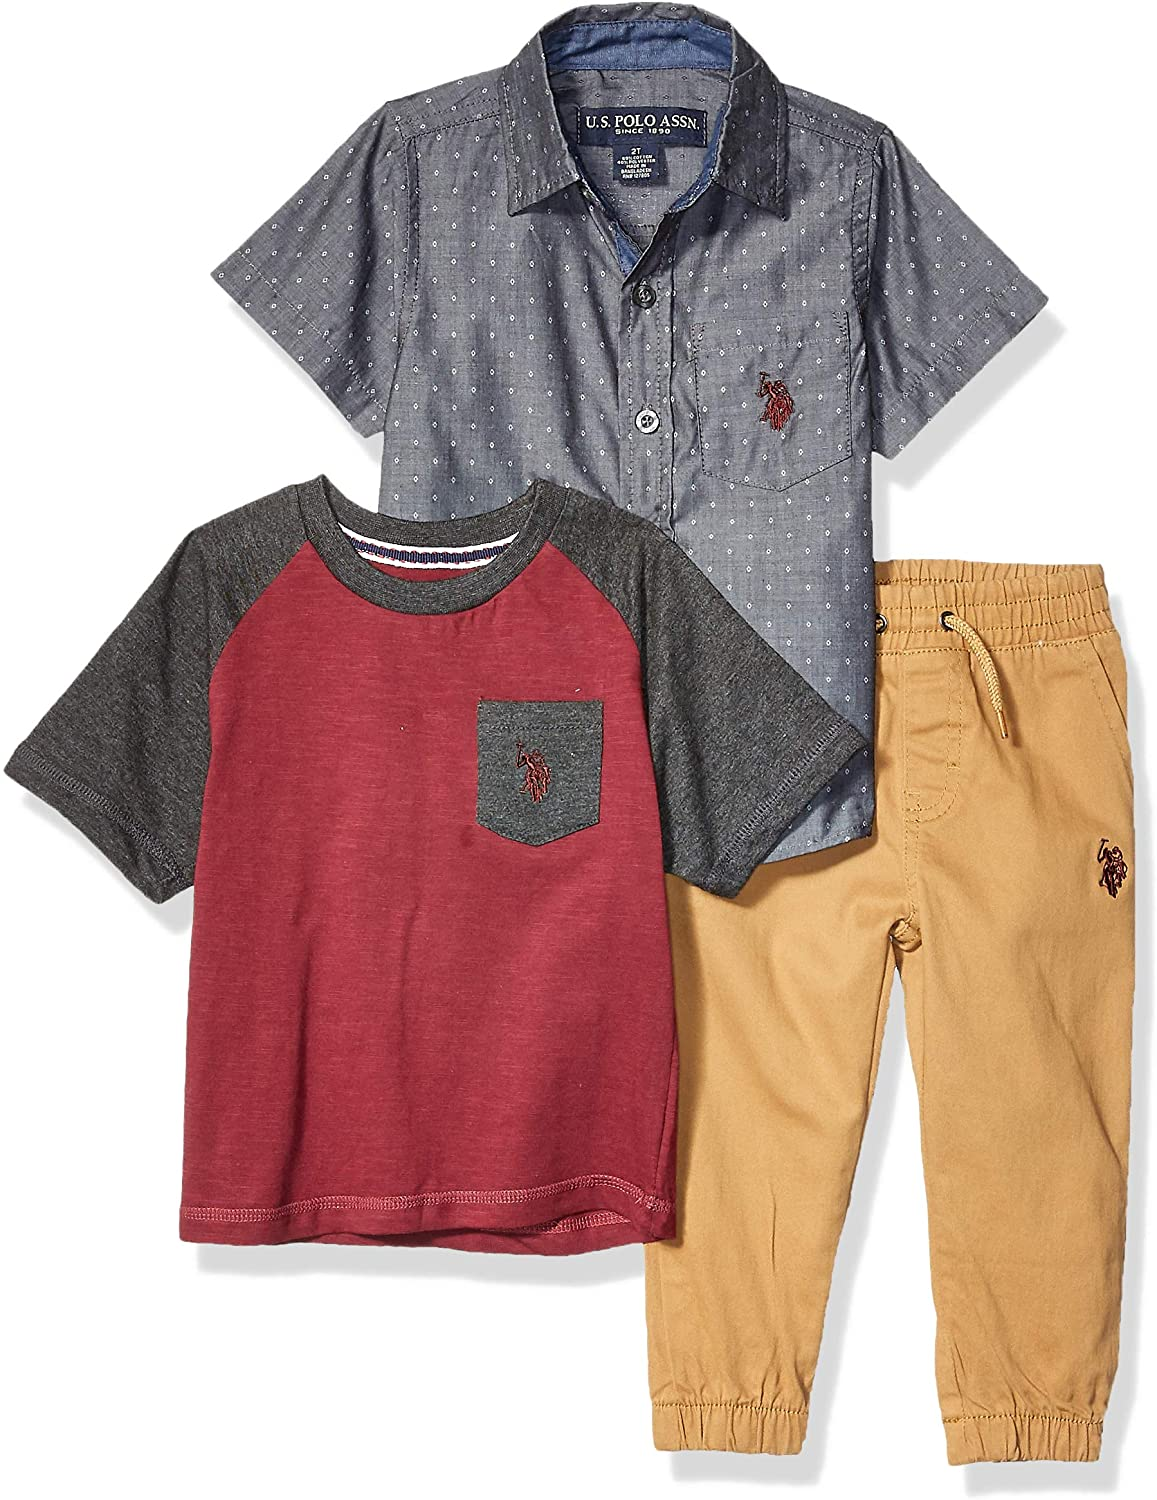 U.S. Polo Assn. Boys' Short Sleeve Woven, Pocket T-Shirt, and Jogger Set